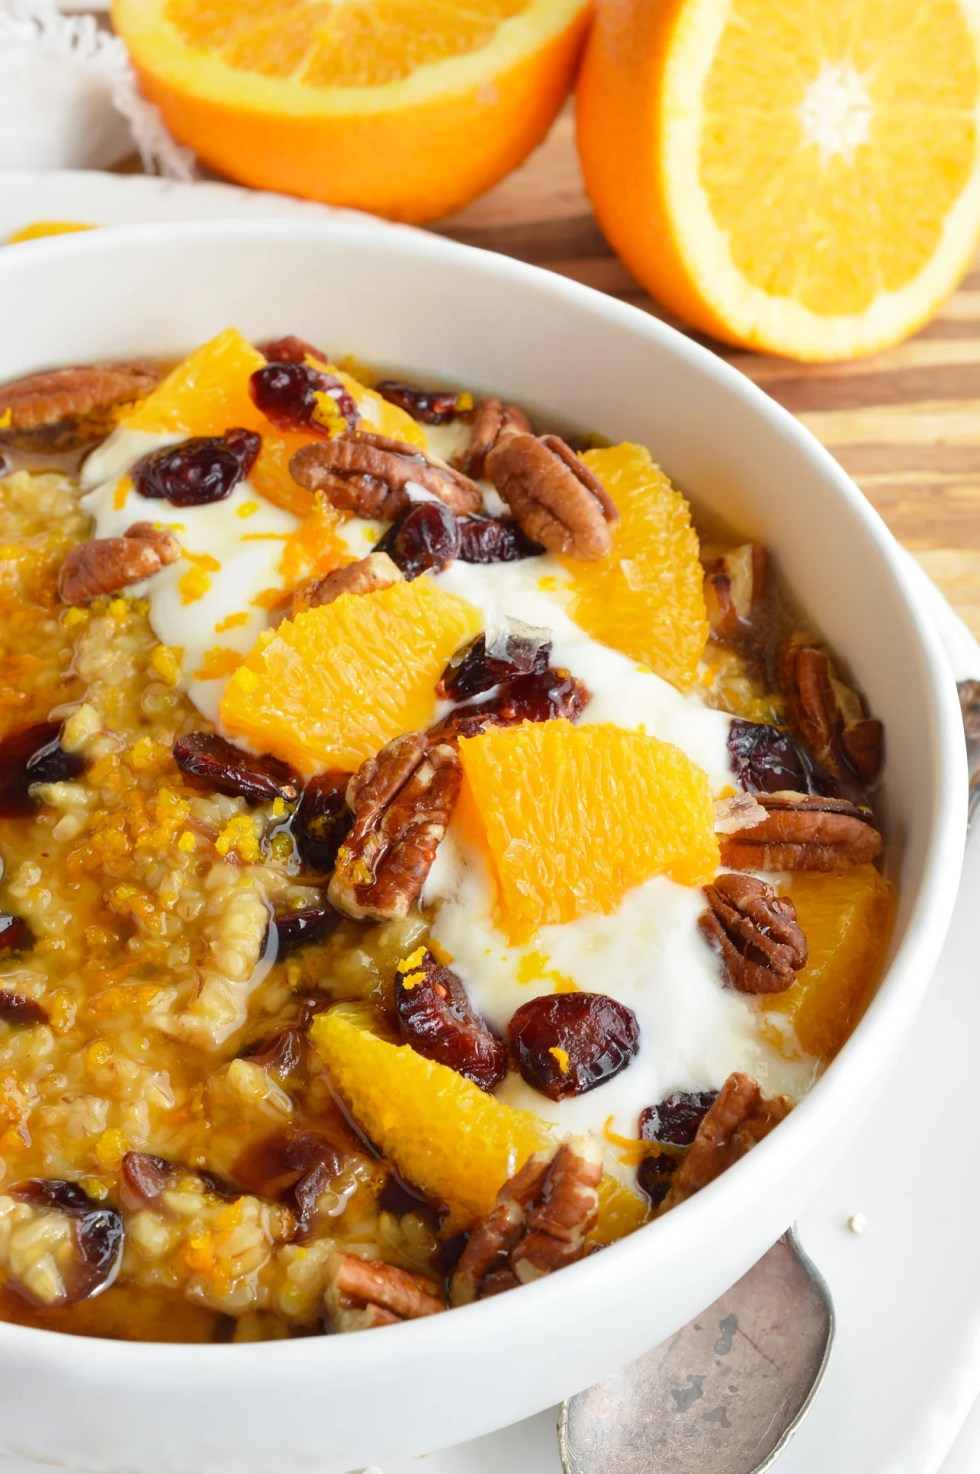 bowl filled with steel cut oatmeal, oranges, pecans and dried cranberries